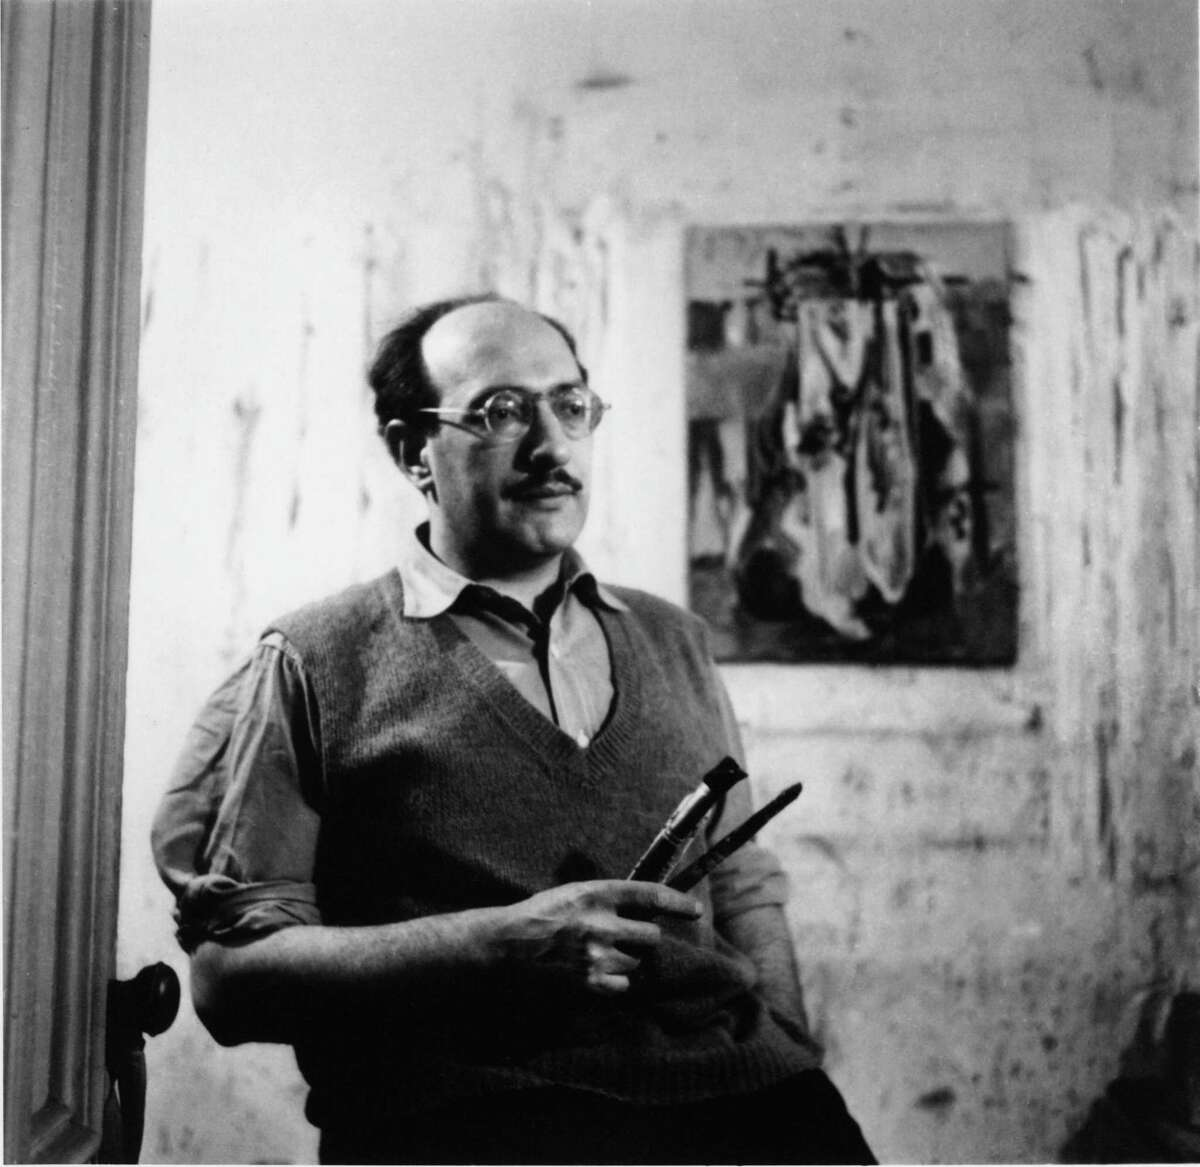 """Mark Rothko holding brushes in front of work on paper Photographer: unknown. Photo featured in the PBS American Masters Documentary """"Rothko: Pictures Must Be Miraculous"""""""